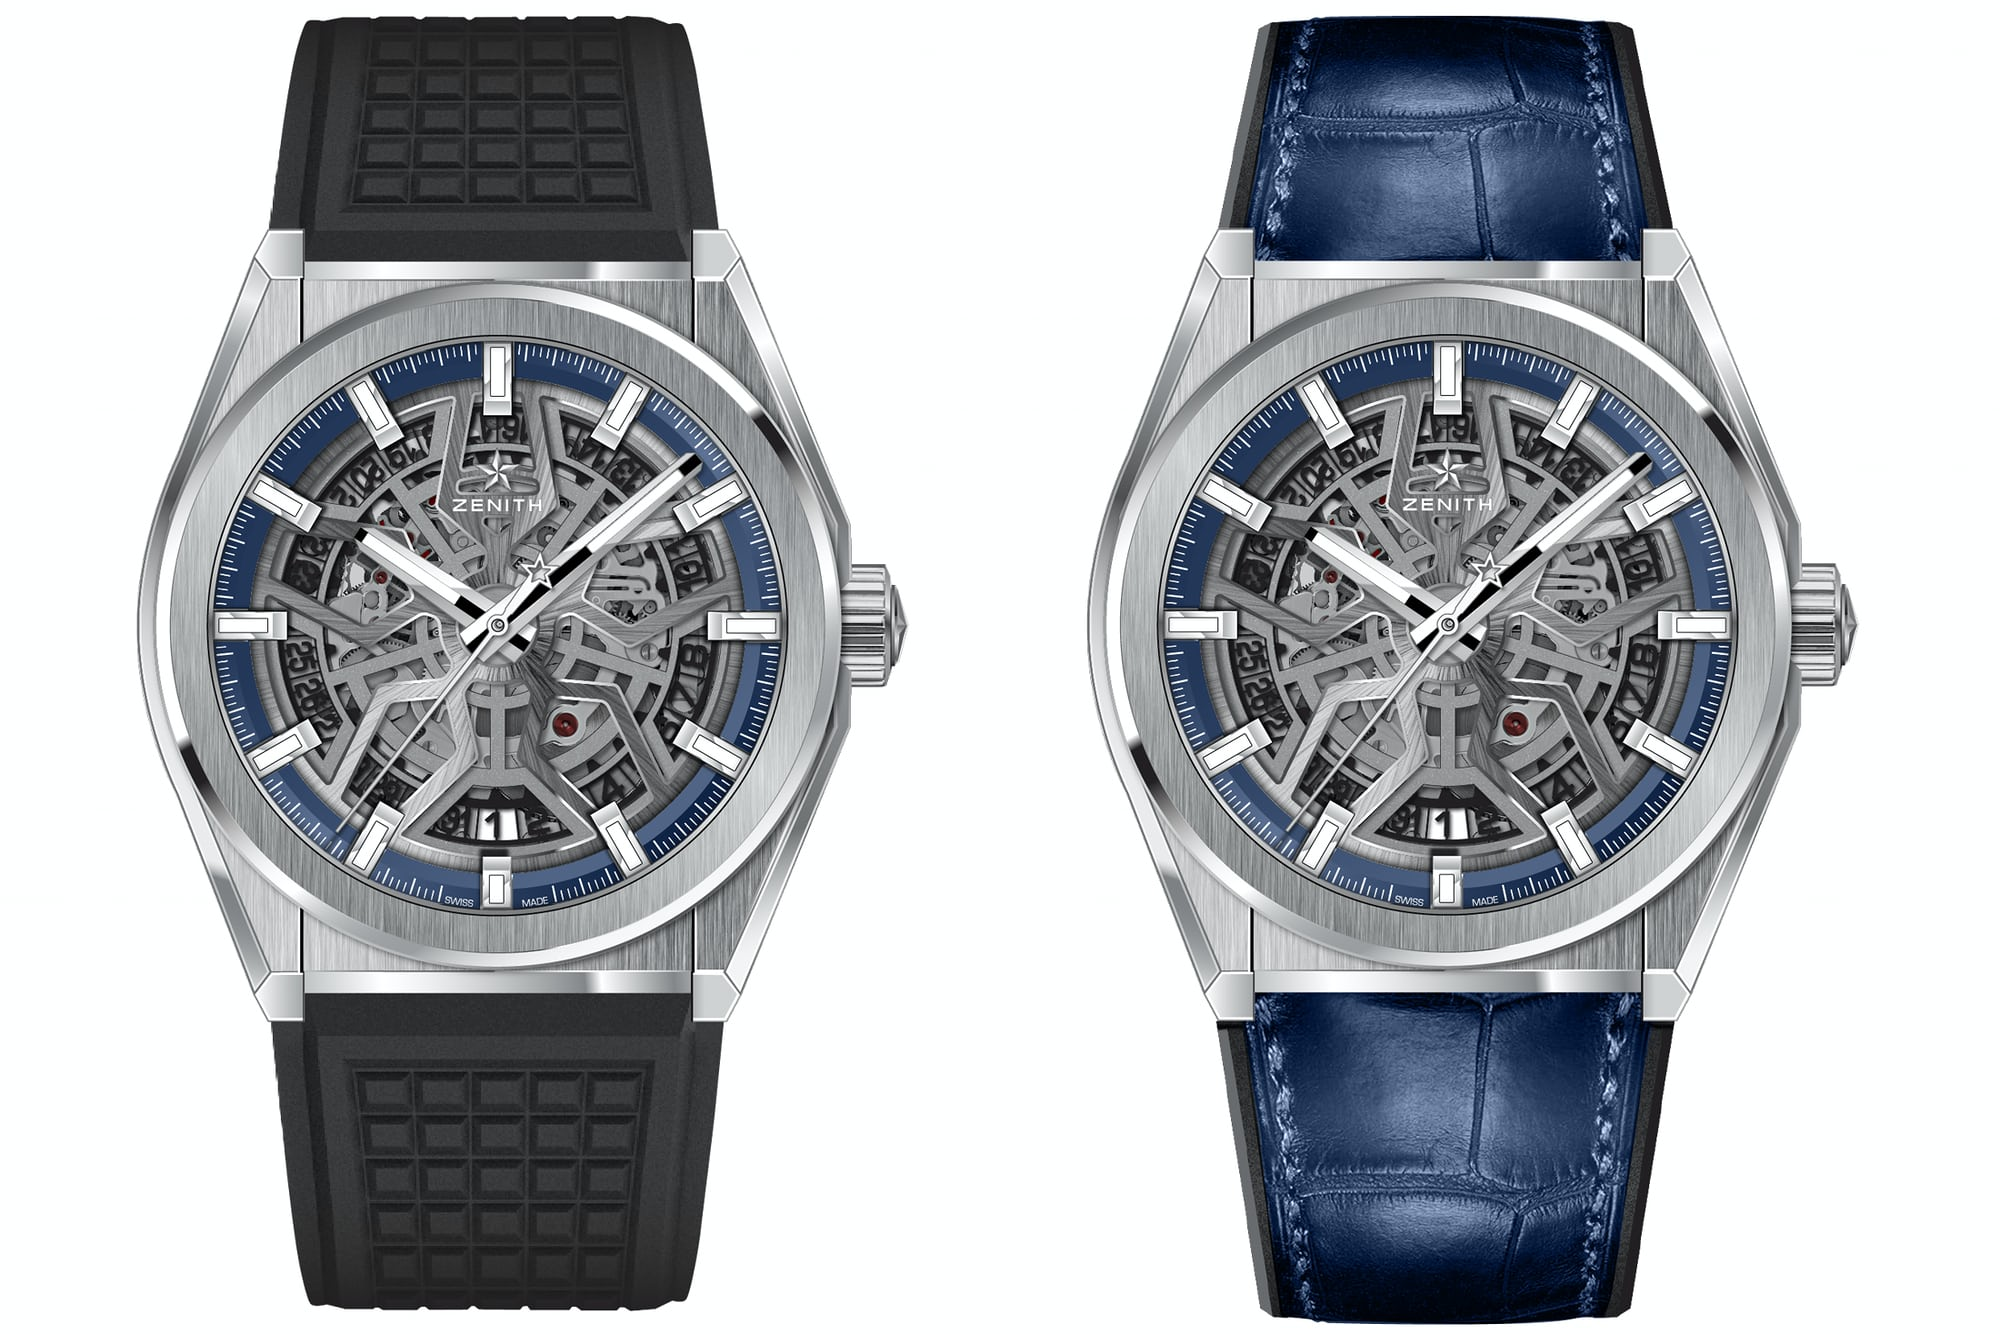 Introducing: The Zenith Defy Classic Introducing: The Zenith Defy Classic z 1